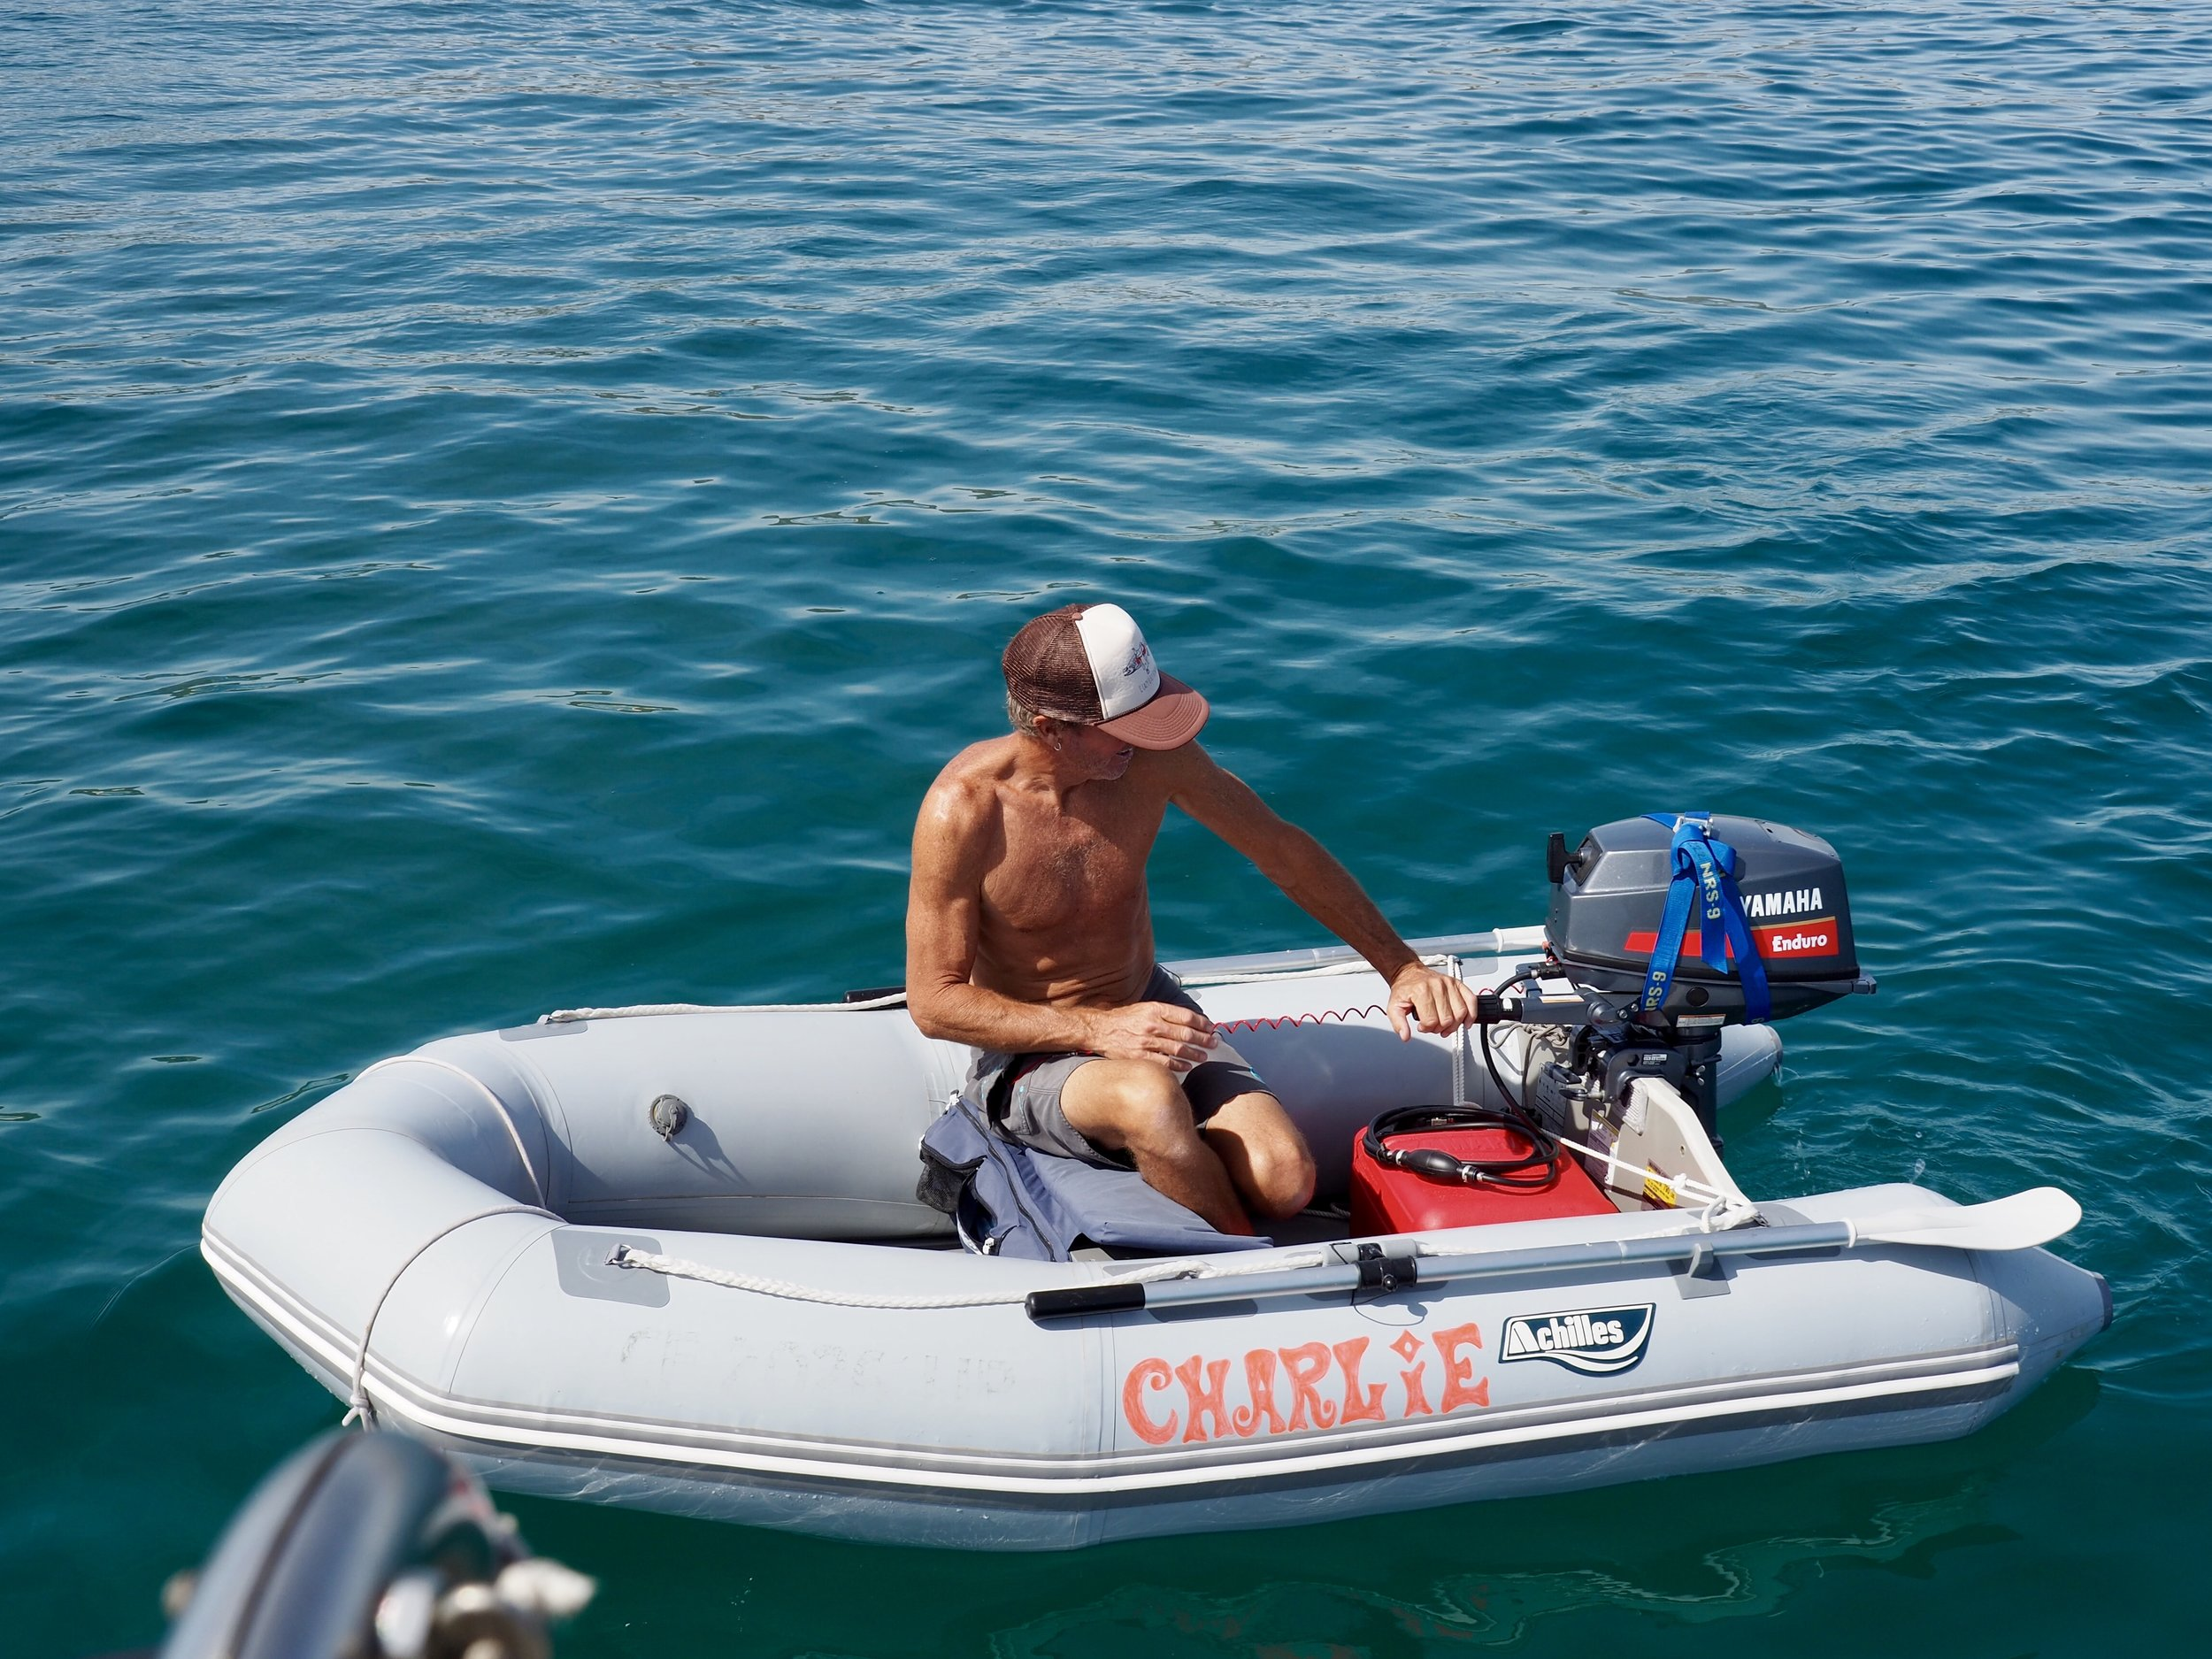 Colin took the opportunity to try out the new outboard.